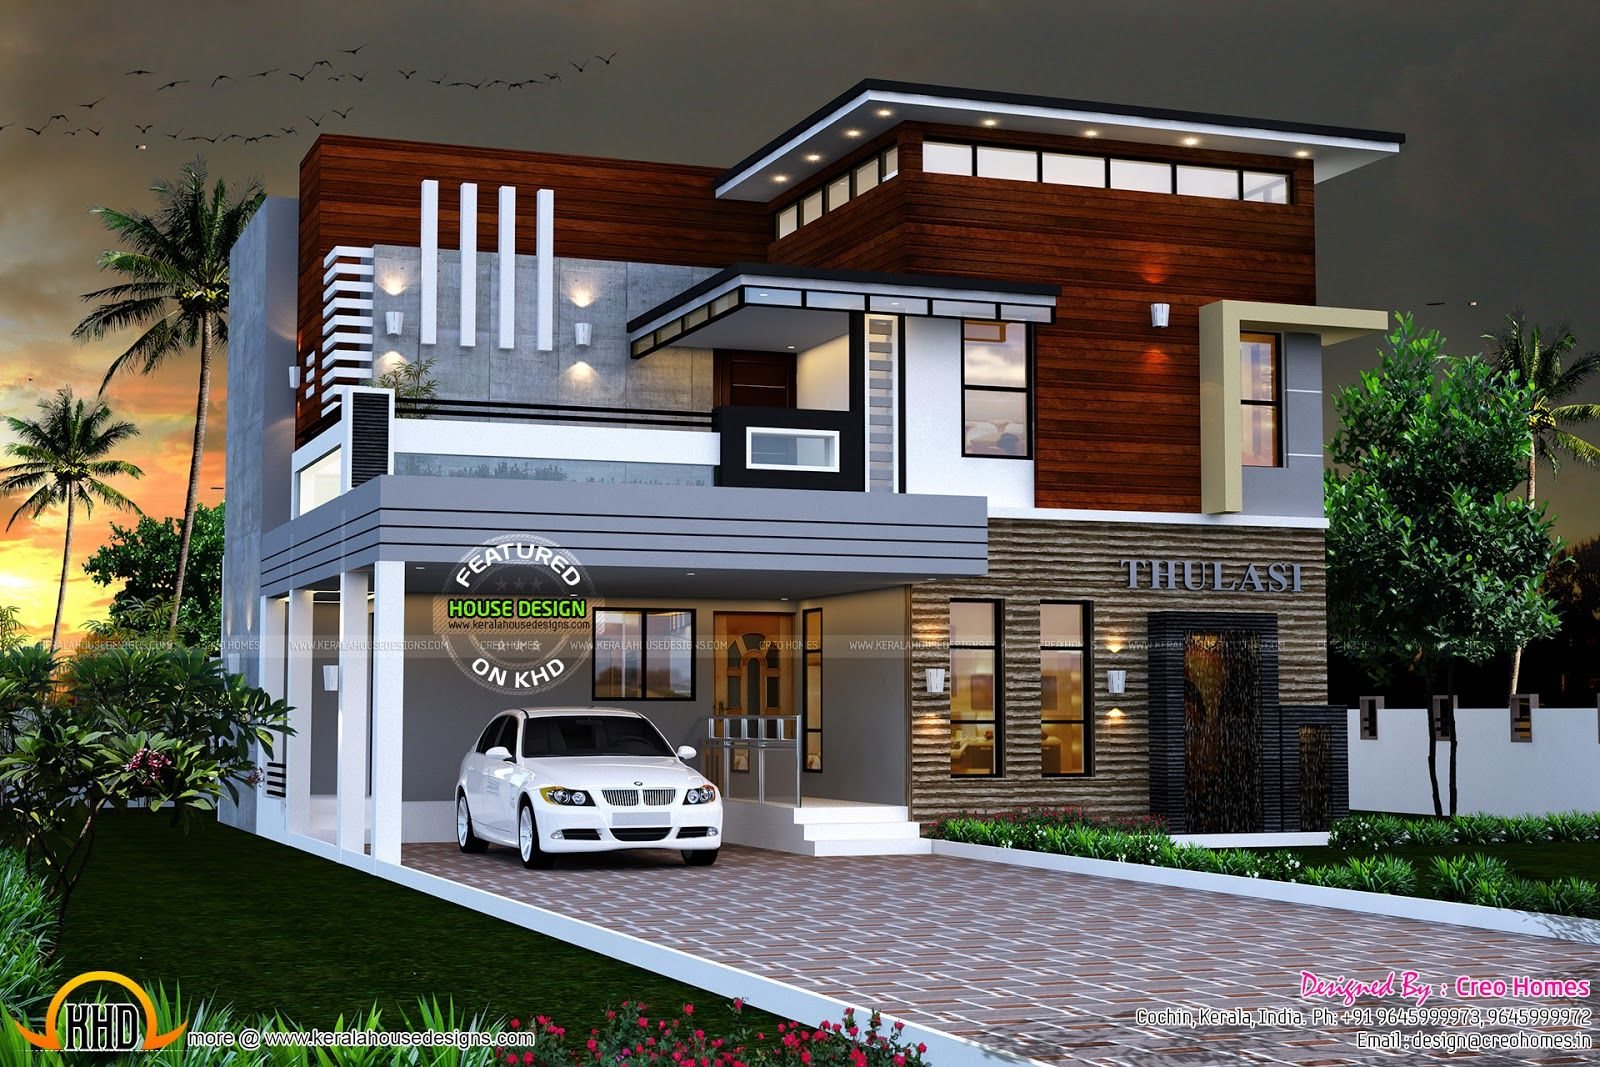 eterior design modern small house architecture building plan home eterior design modern small house architecture building plan home design kerala house plans home decorating ideas